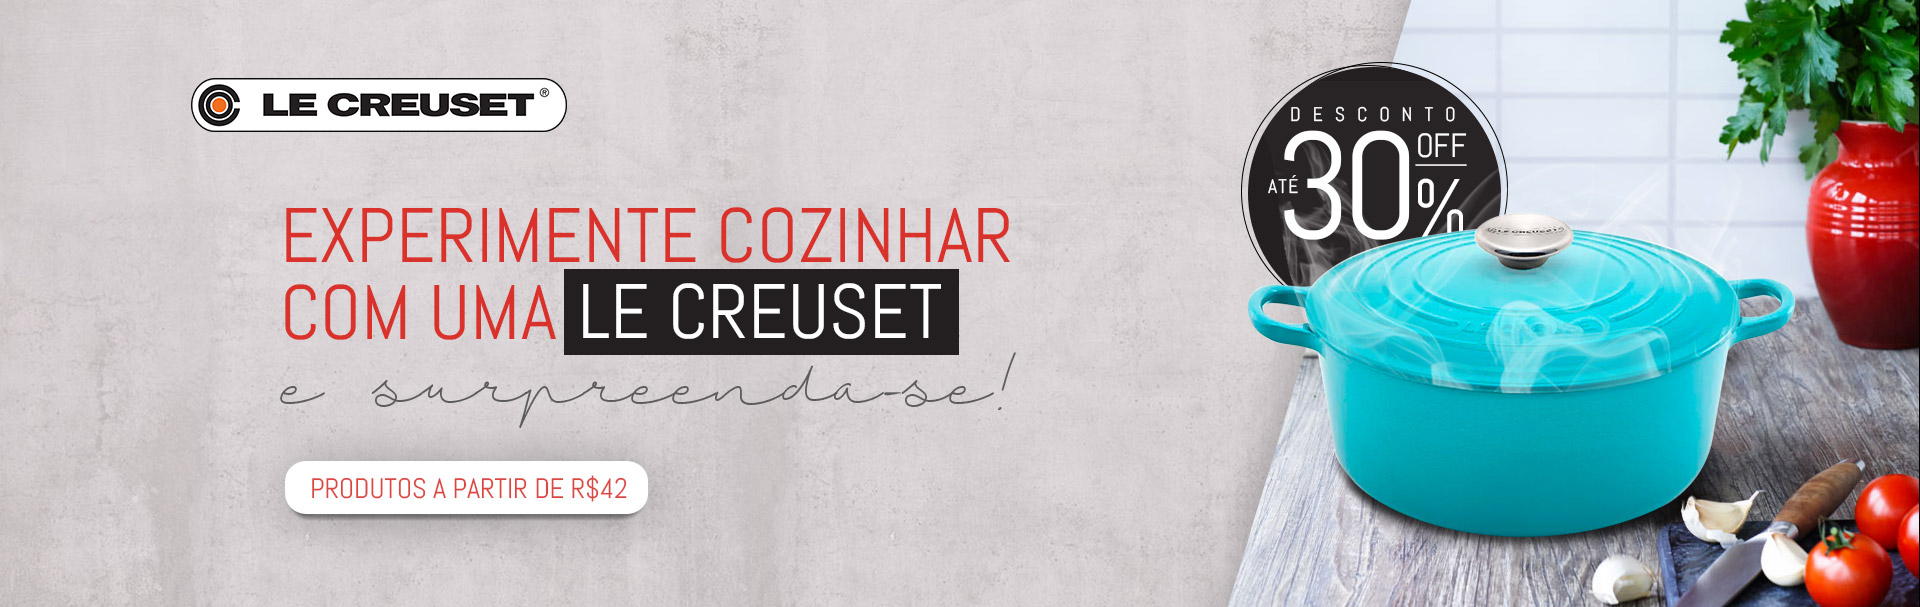 Le Creuset 25 Off - Abril/18